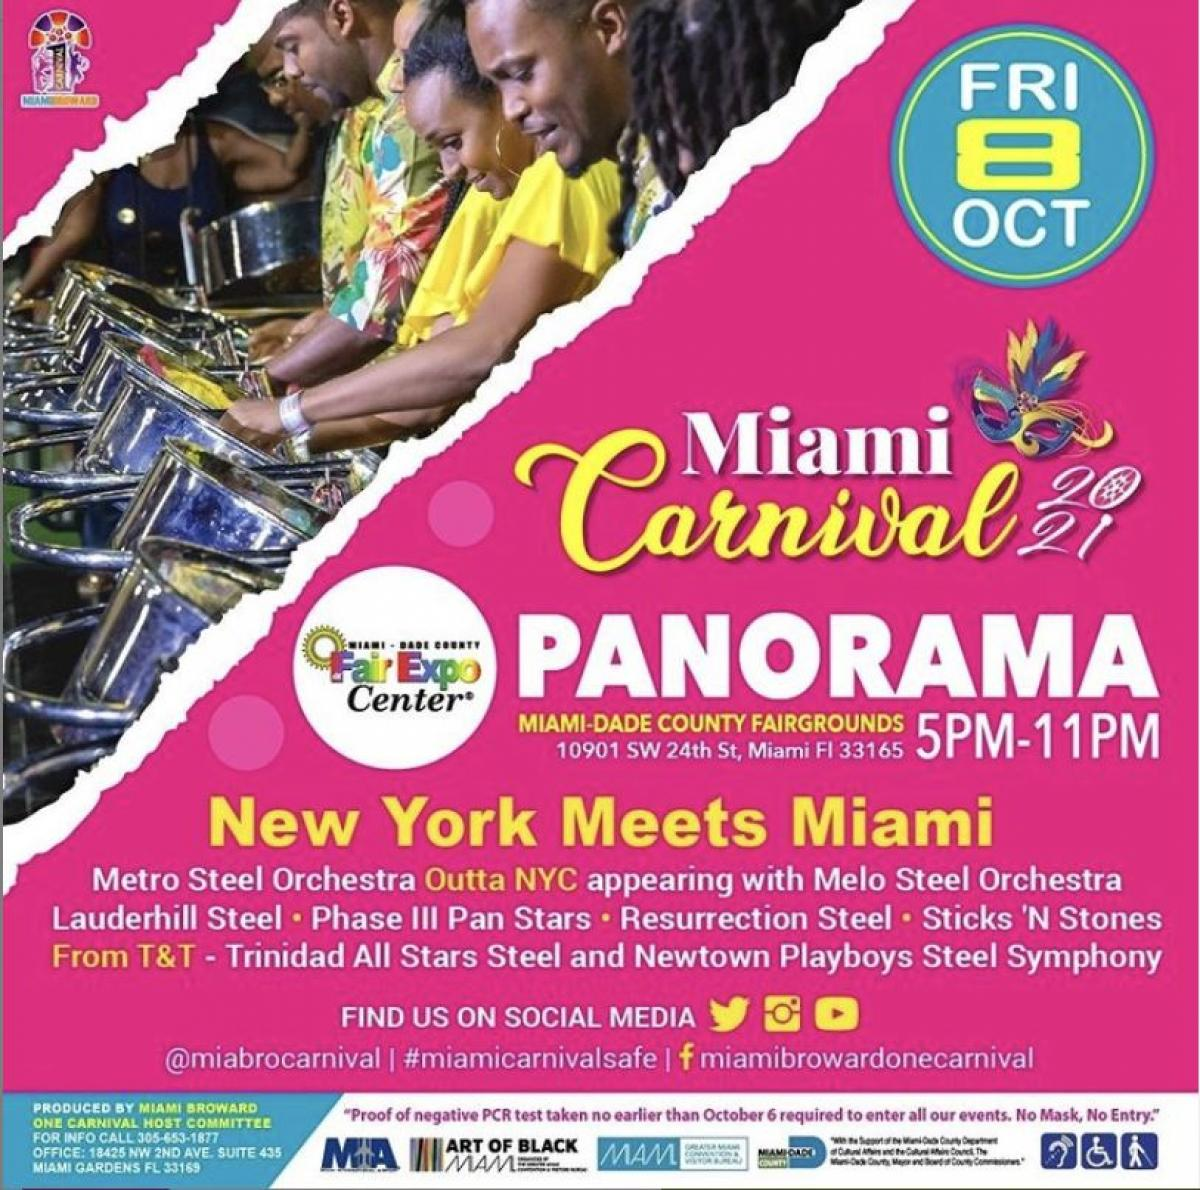 Panorama  flyer or graphic.